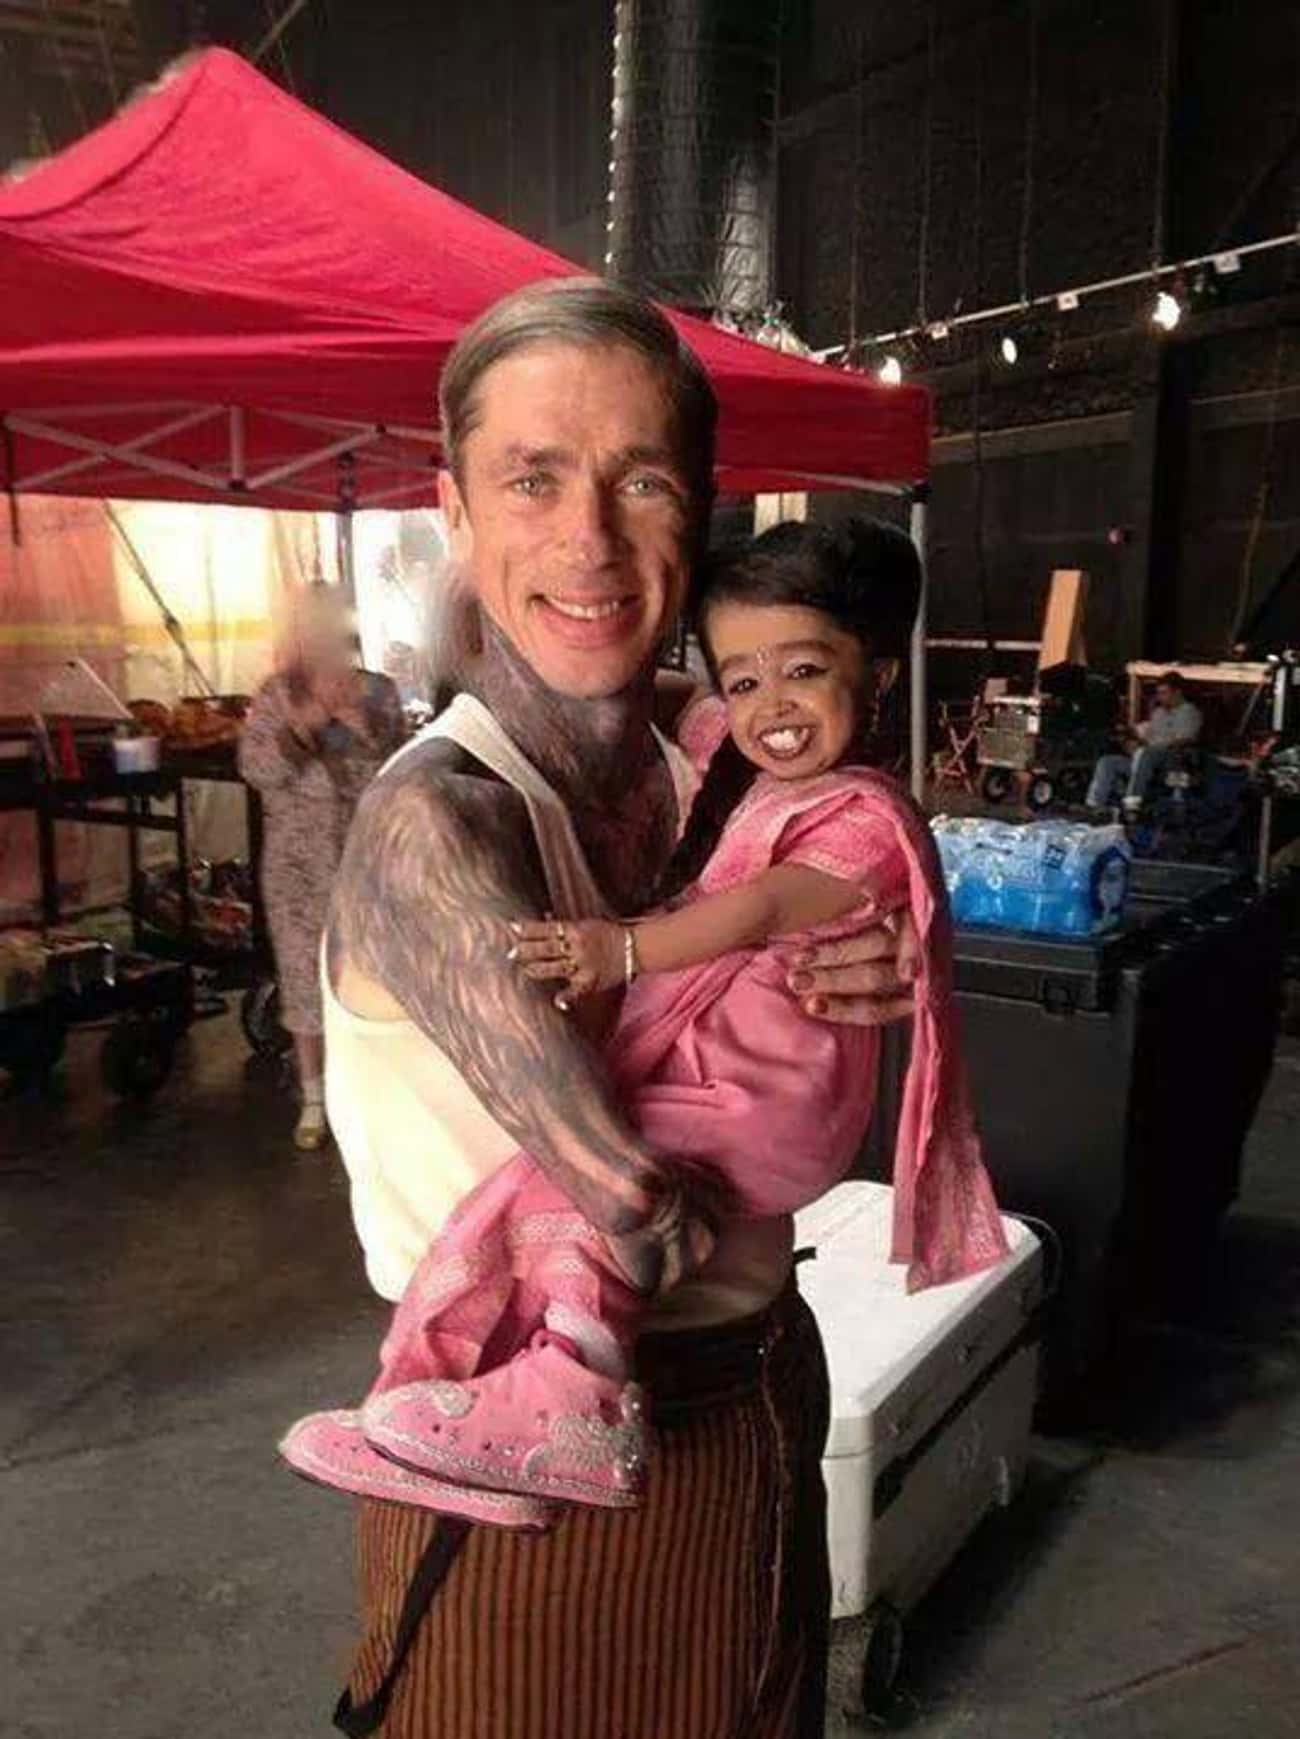 No Shortage Of Love Between Ca is listed (or ranked) 1 on the list Behind The Scenes Photos From American Horror Story You've Probably Never Seen Before